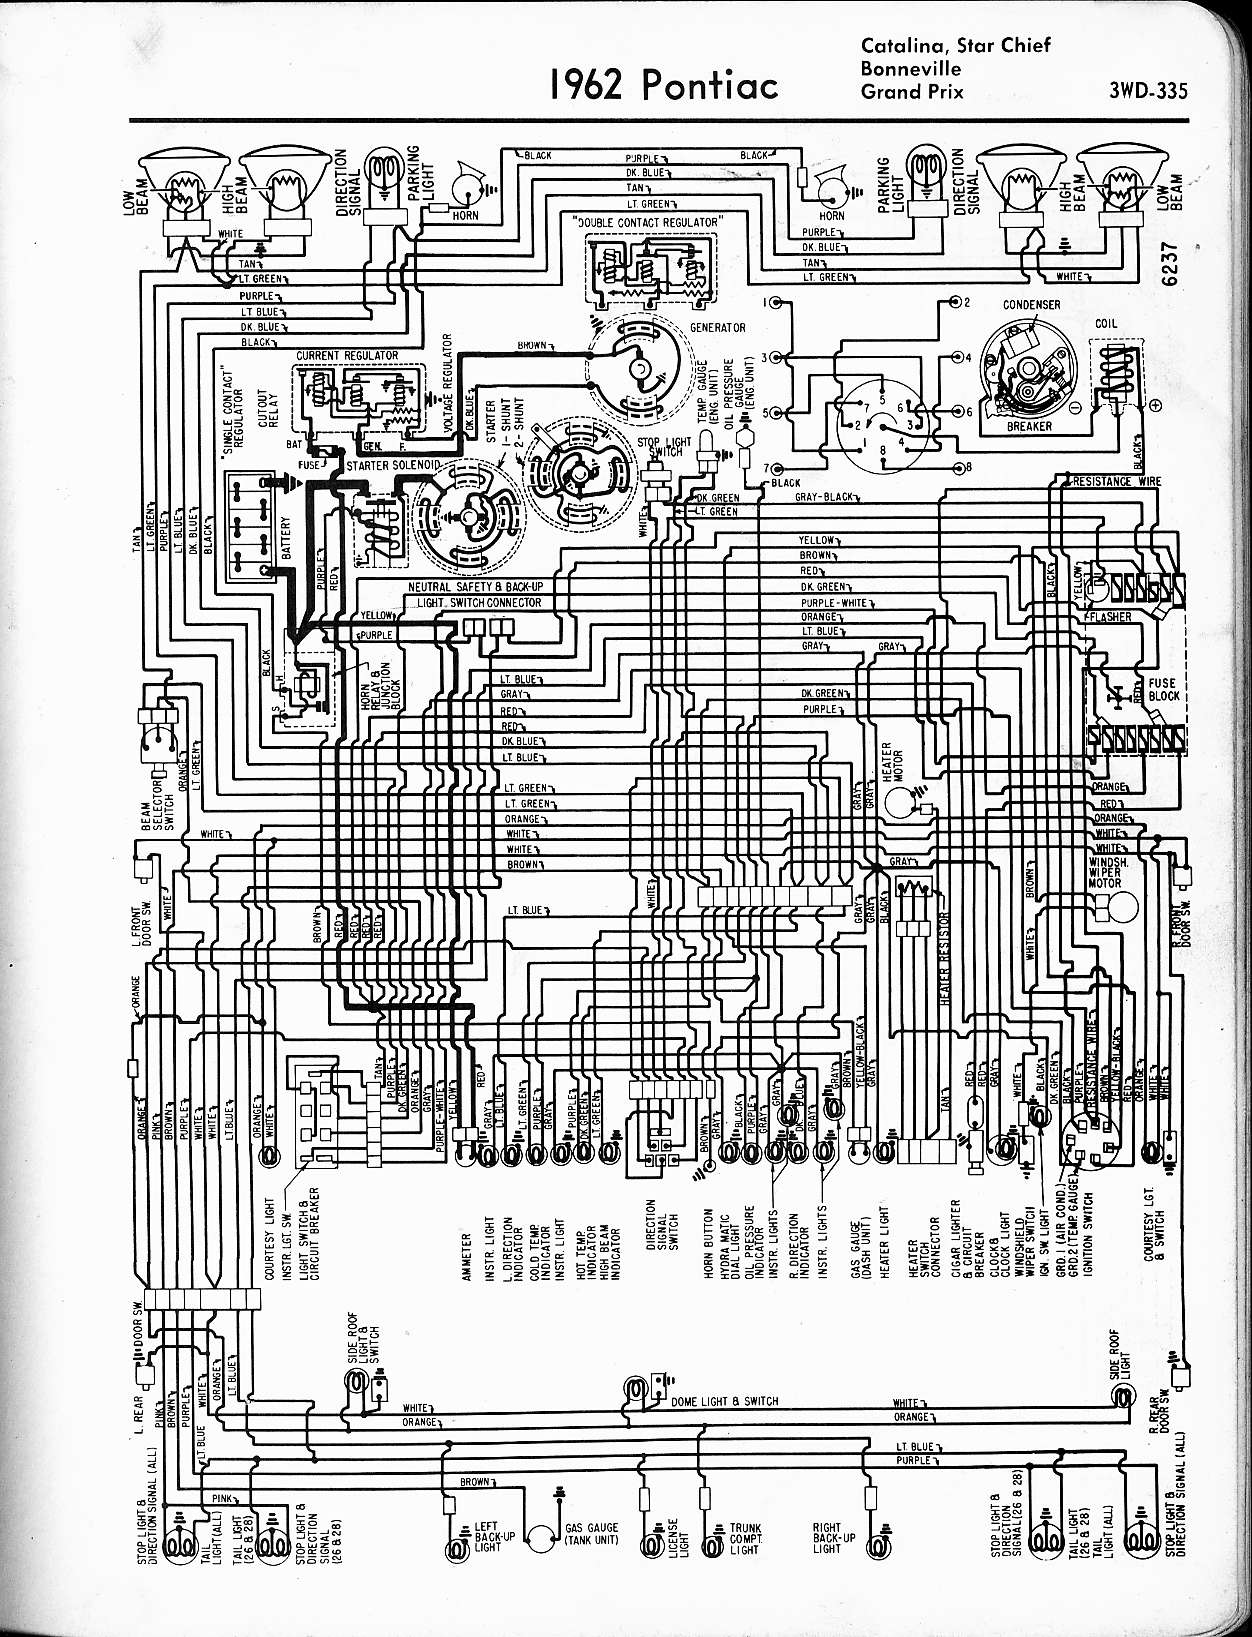 1965 Pontiac Tach Wiring Diagram Most Uptodate Info Stewart Warner 1966 Free For You U2022 Rh Six Designenvy Co Autogage Tachometer